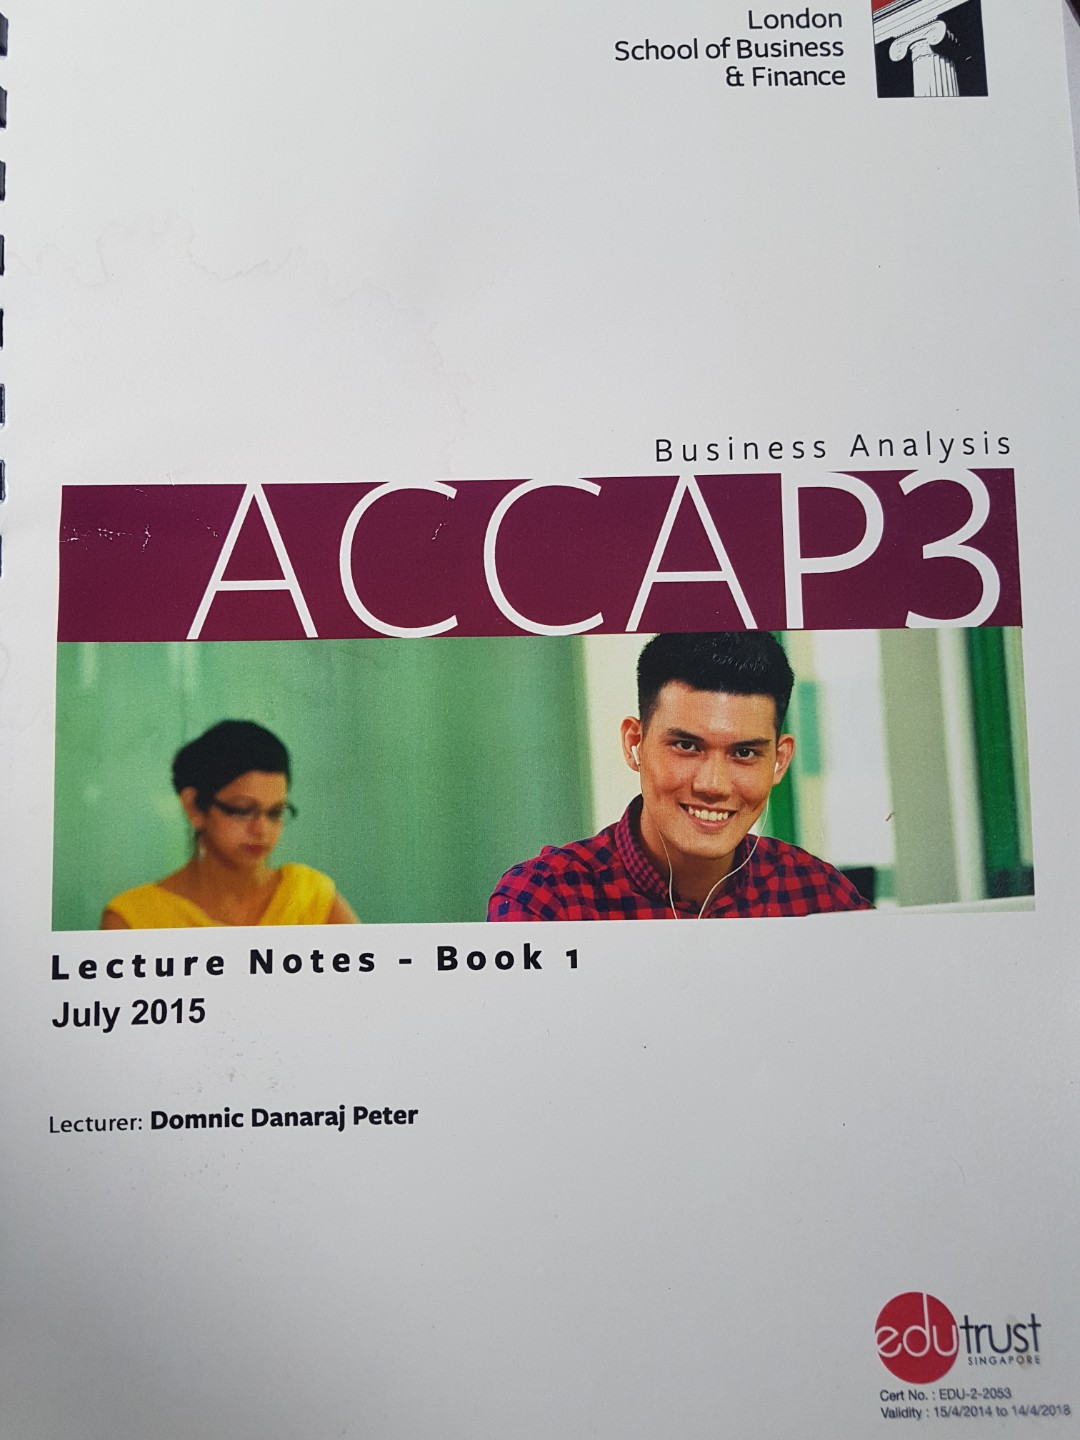 ACCA P3 Lecture Notes by LSBF